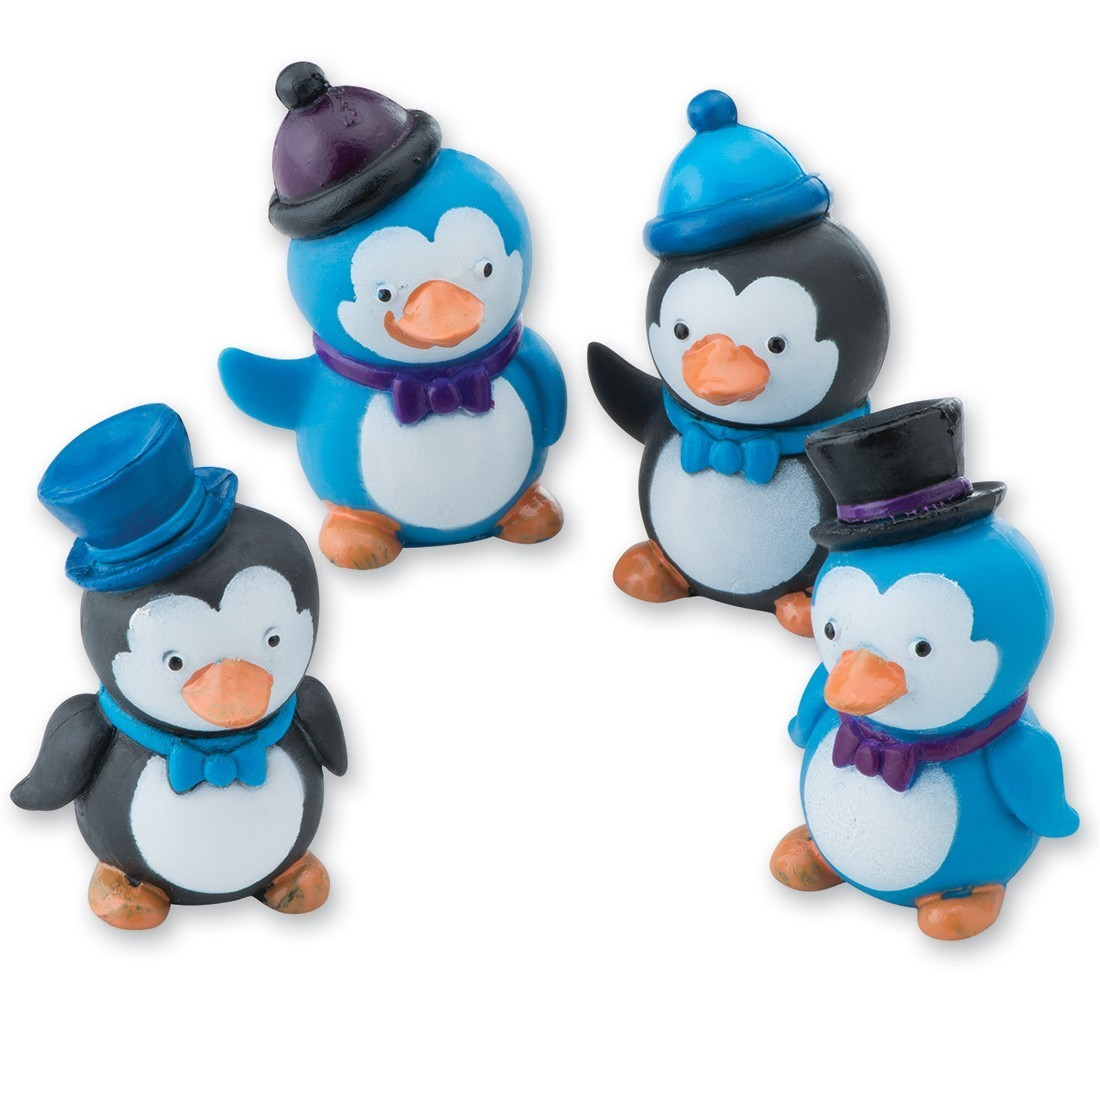 Penguin Figurines [image]